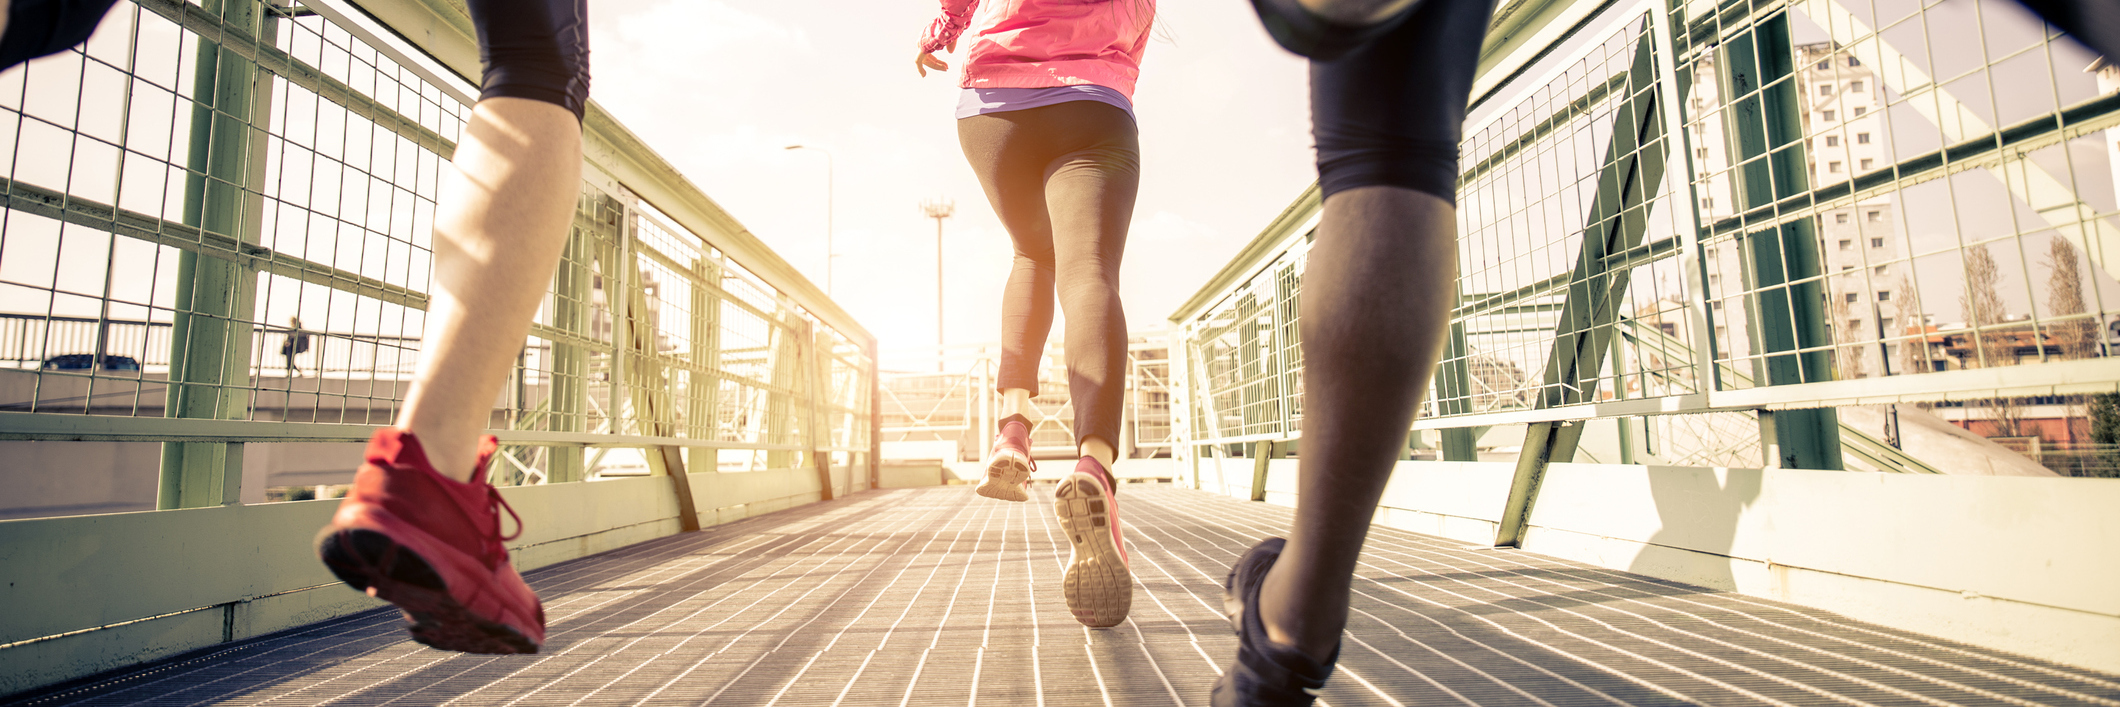 three runners sprinting outdoors along bridge